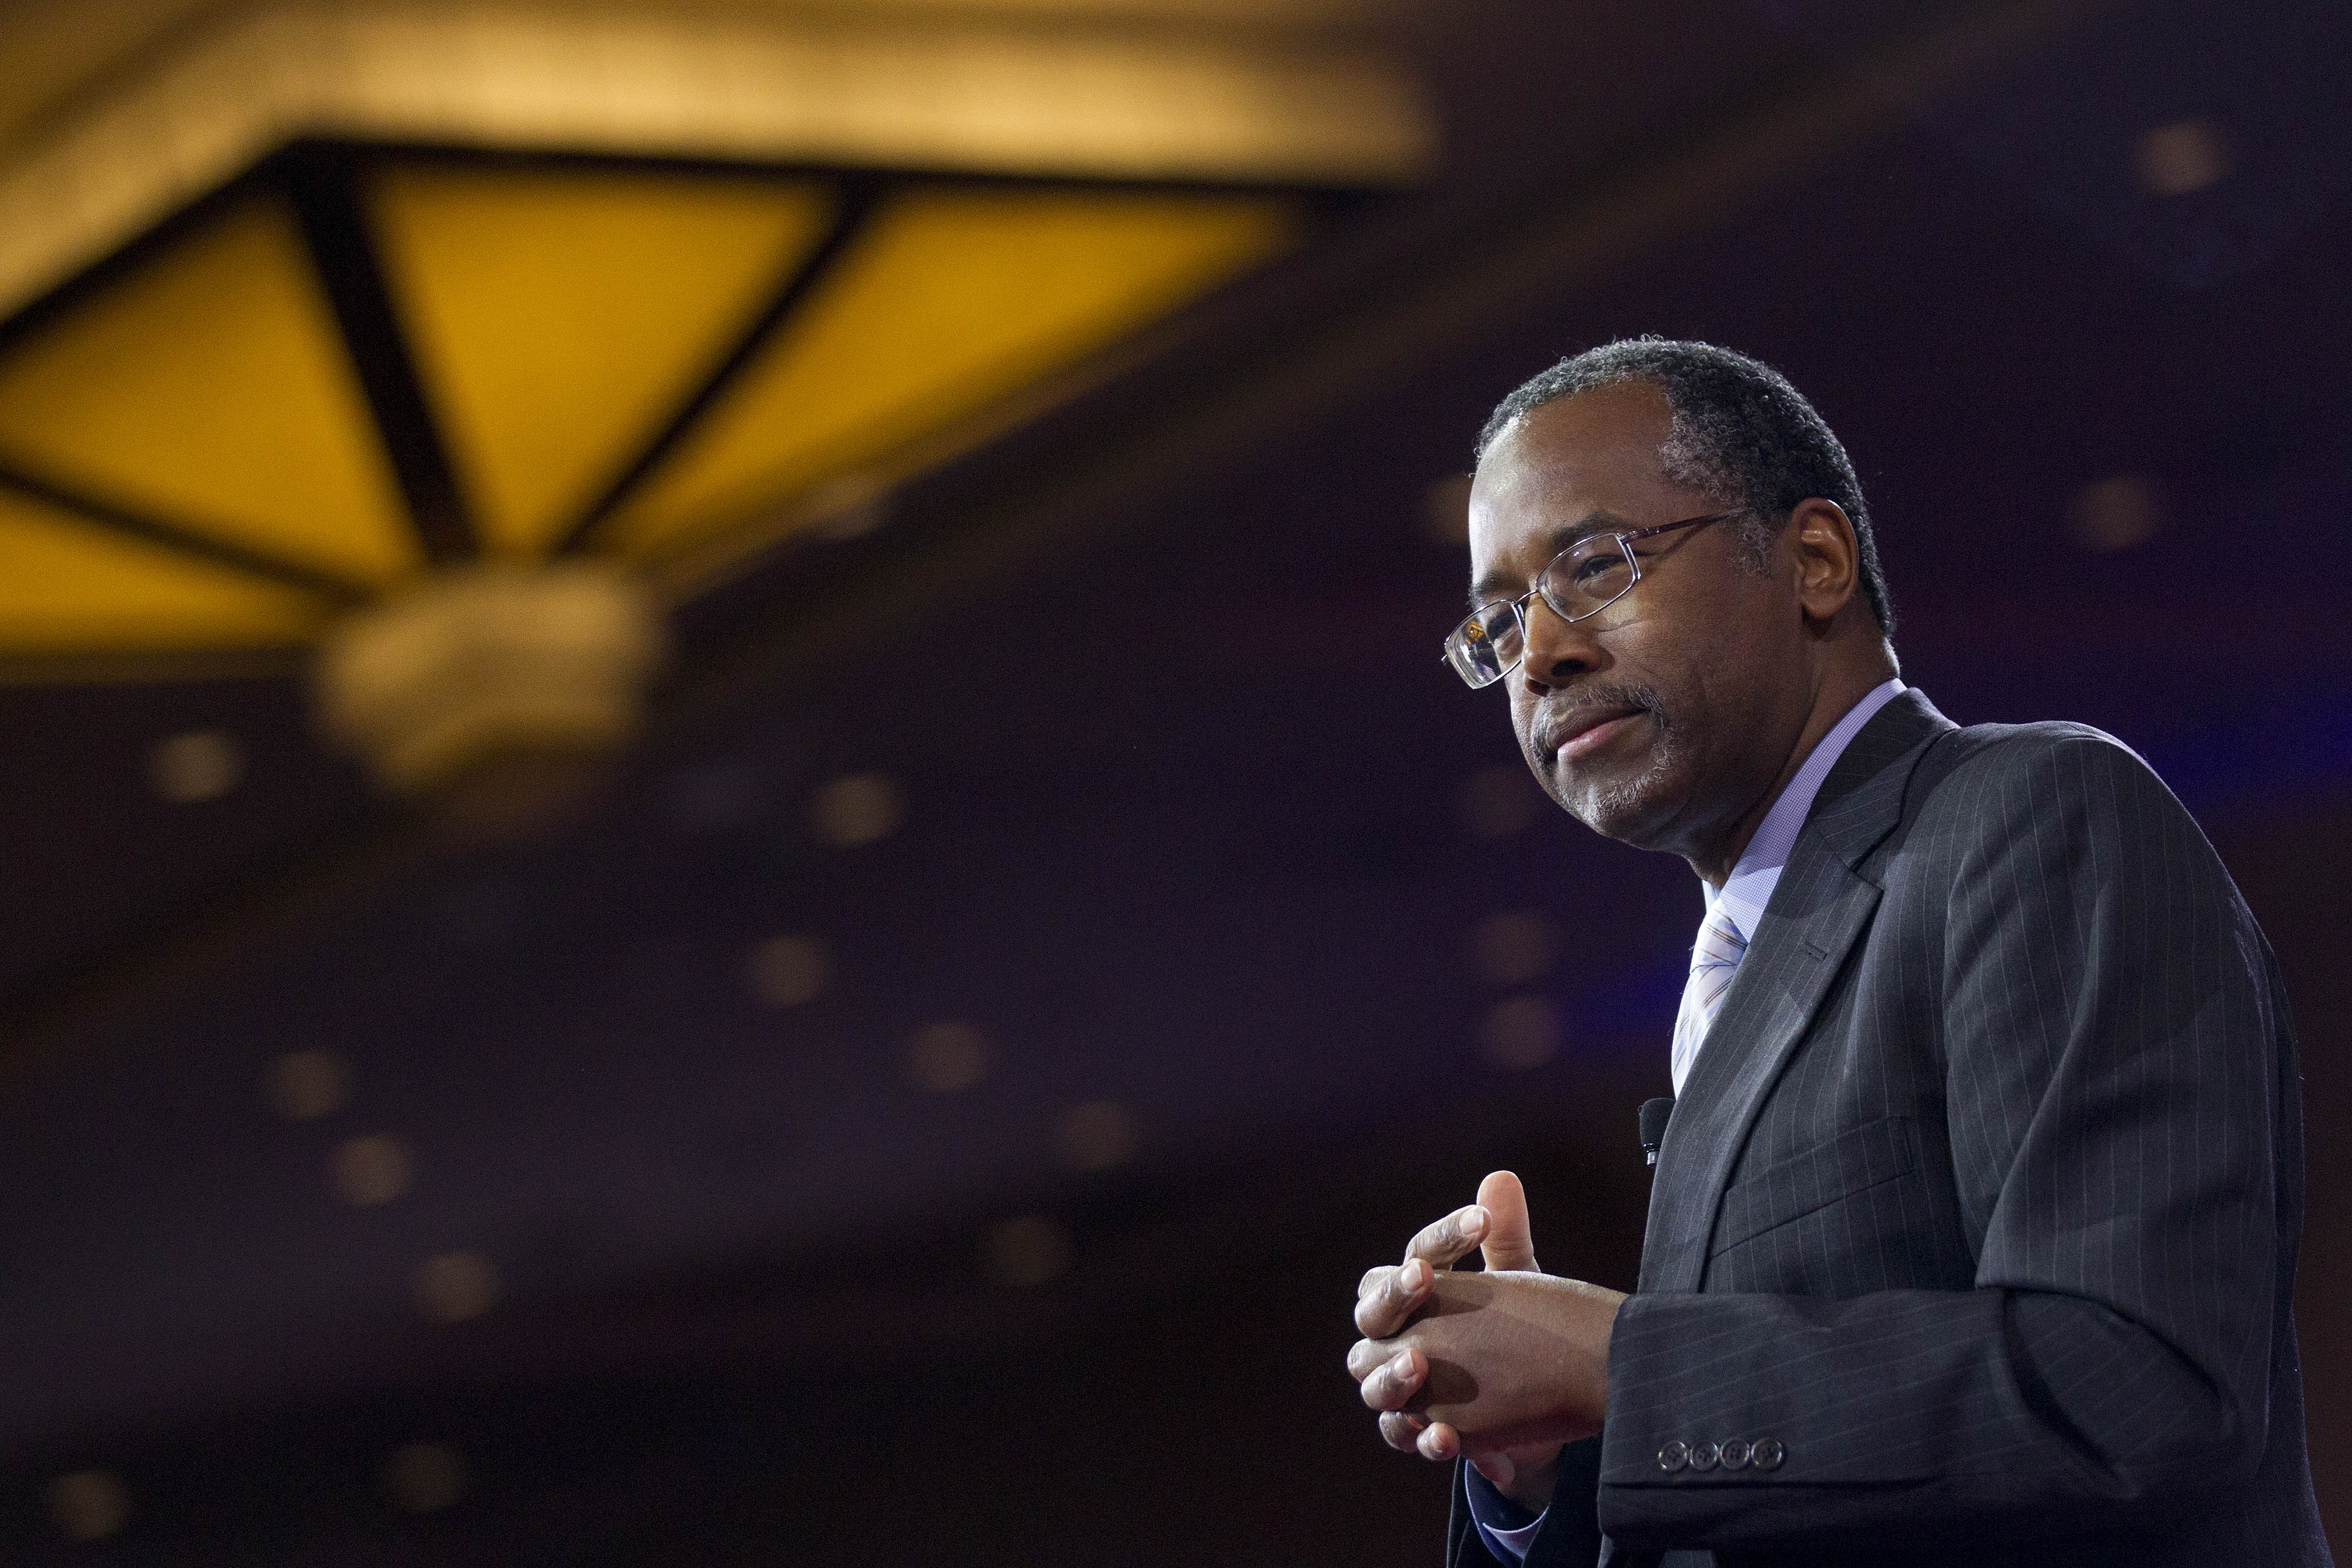 Ben Carson during the Conservative Political Action Conference in National Harbor, Md.,on Feb. 26, 2015.